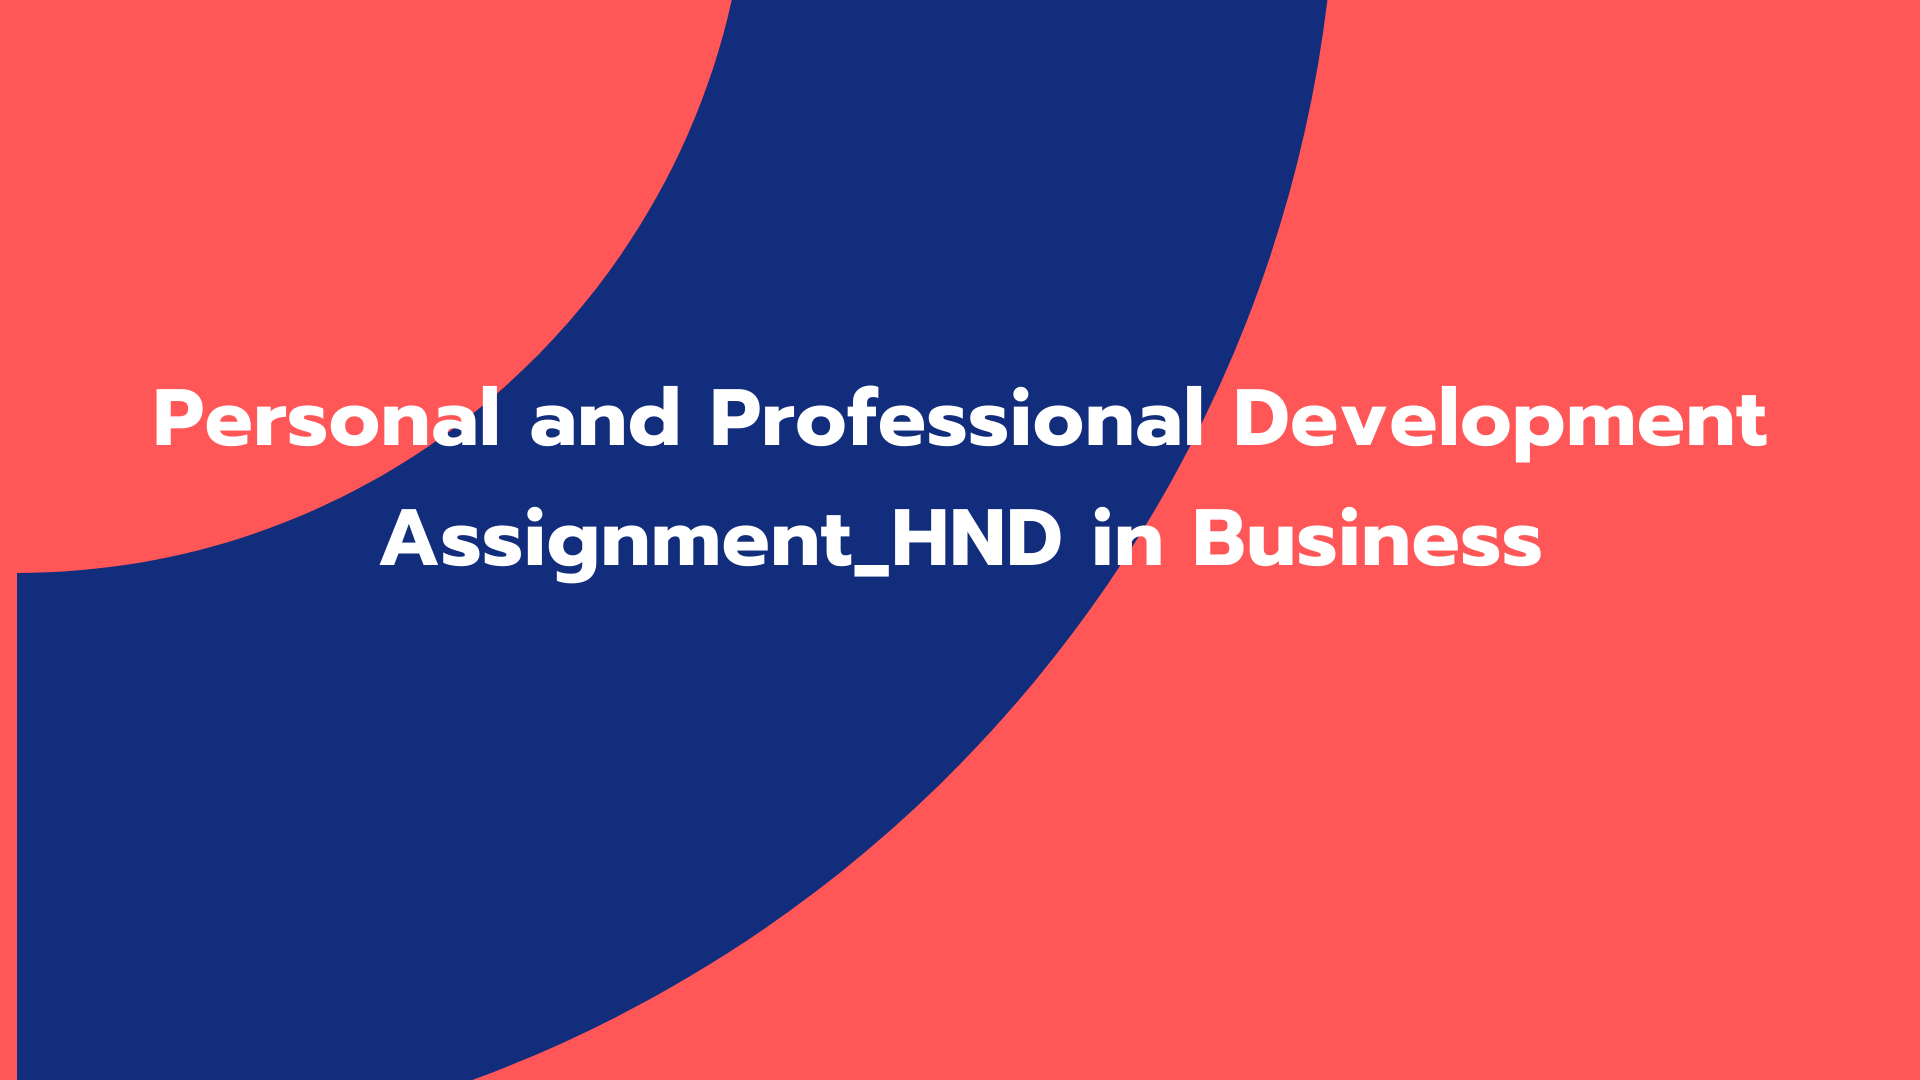 Personal and Professional Development Assignment_HND in Business